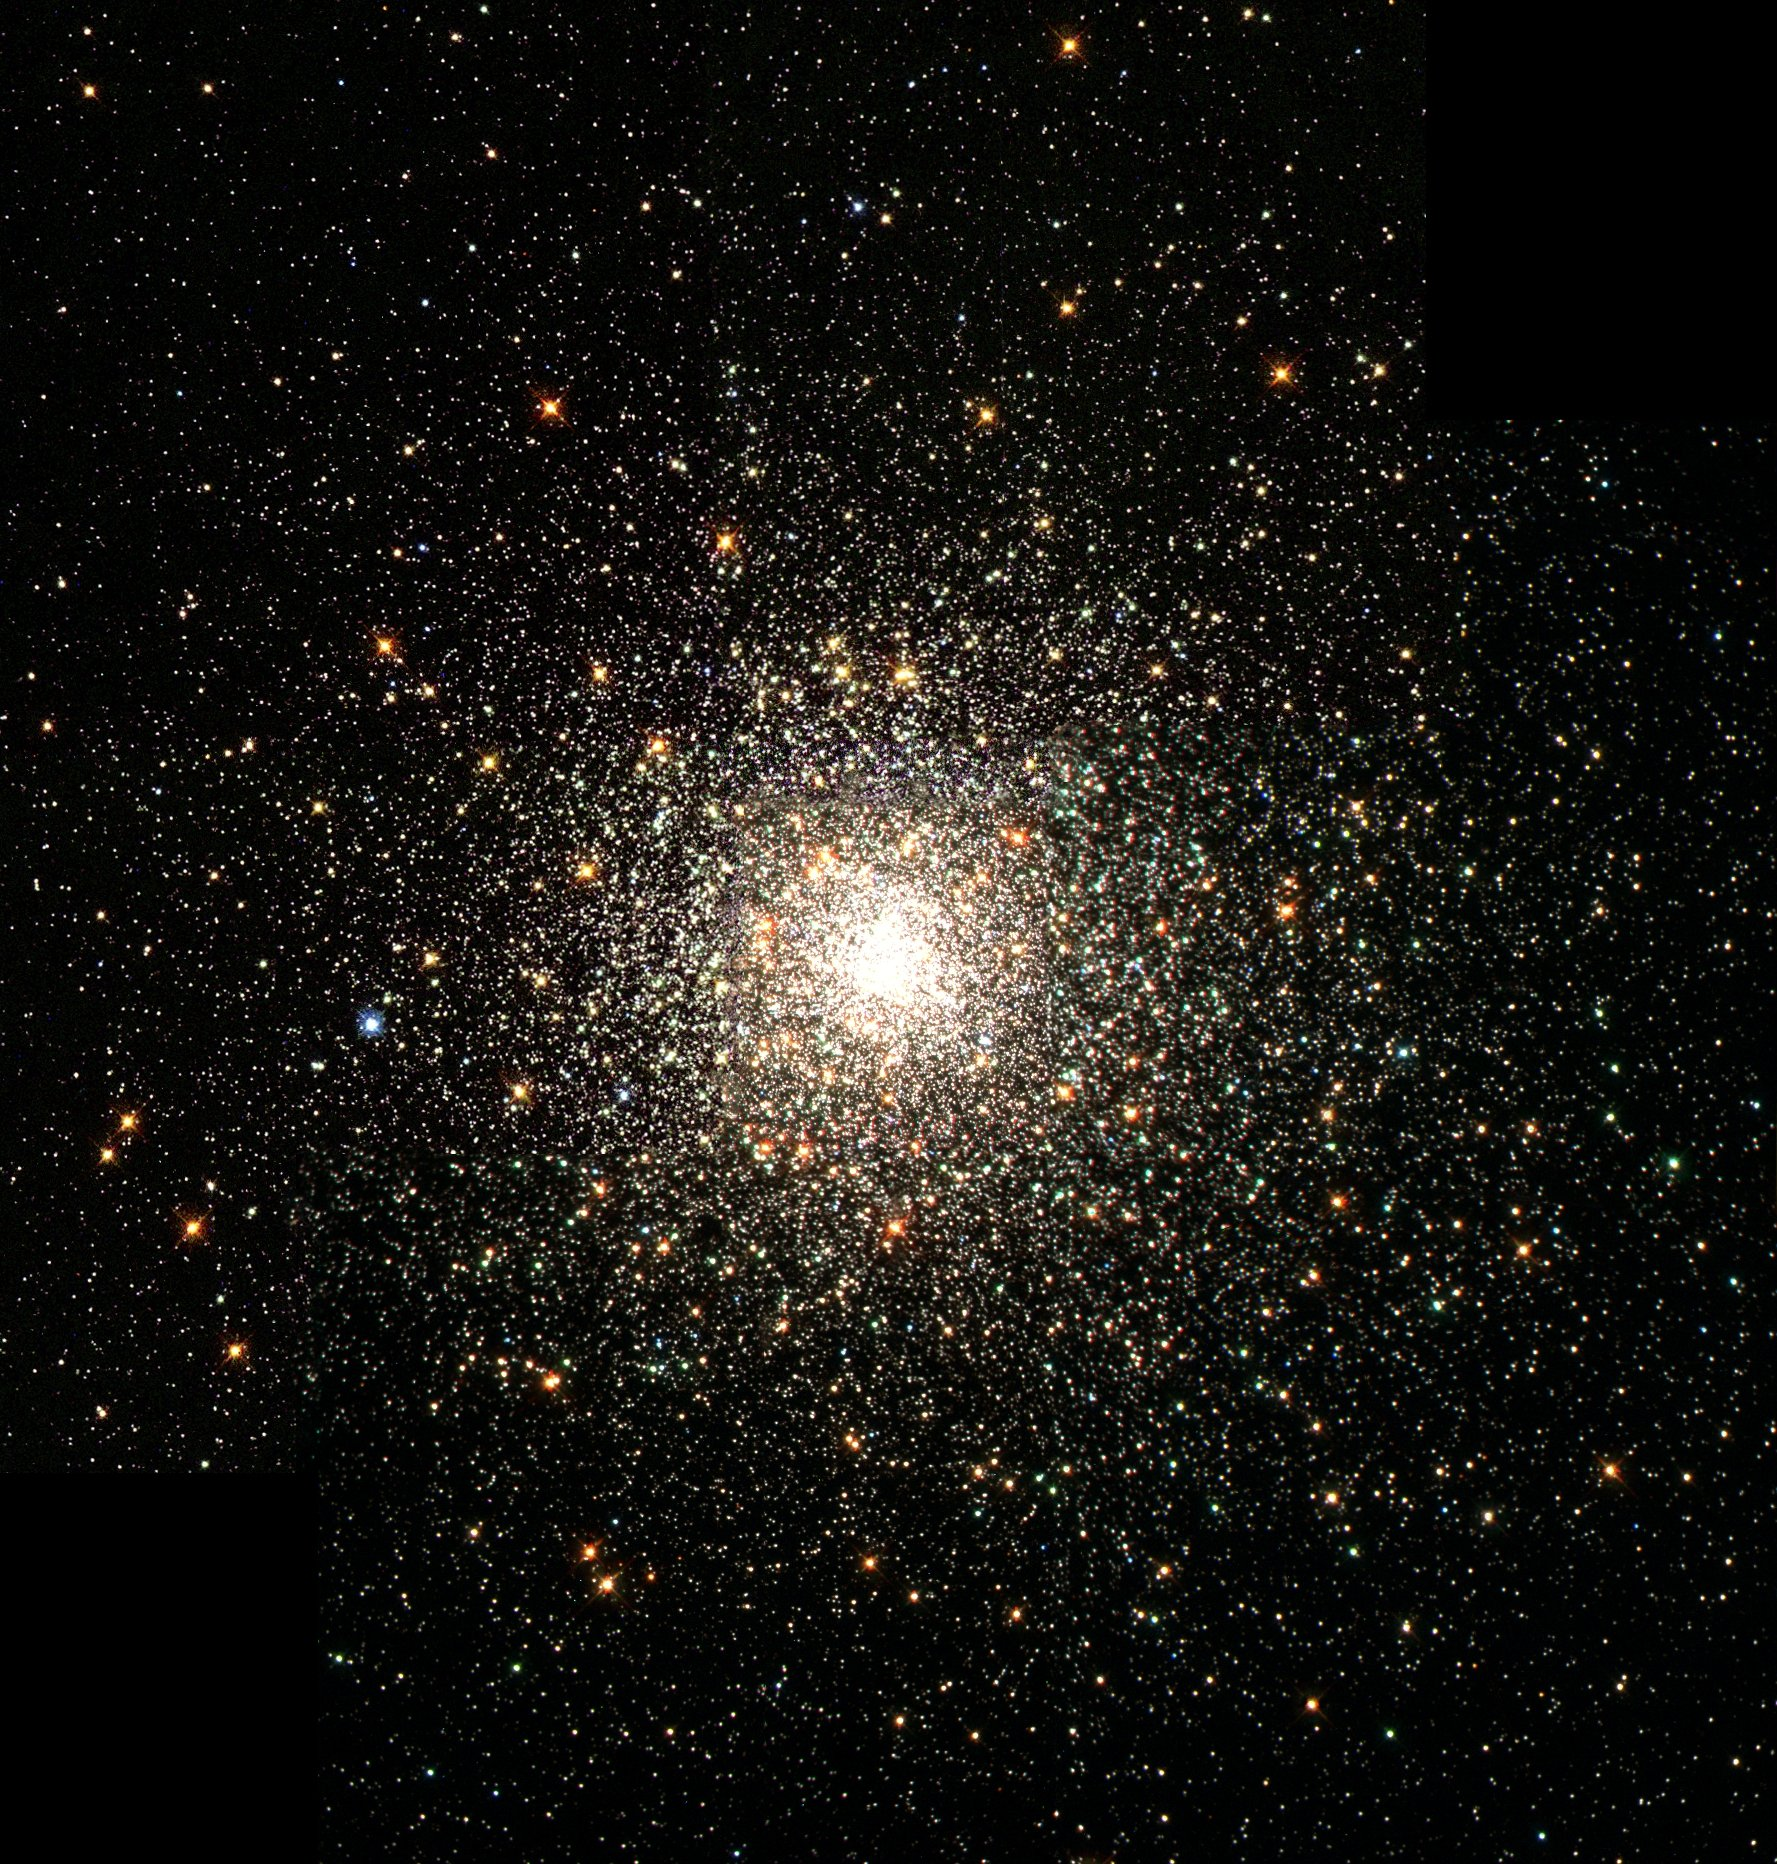 star-clusters-11027